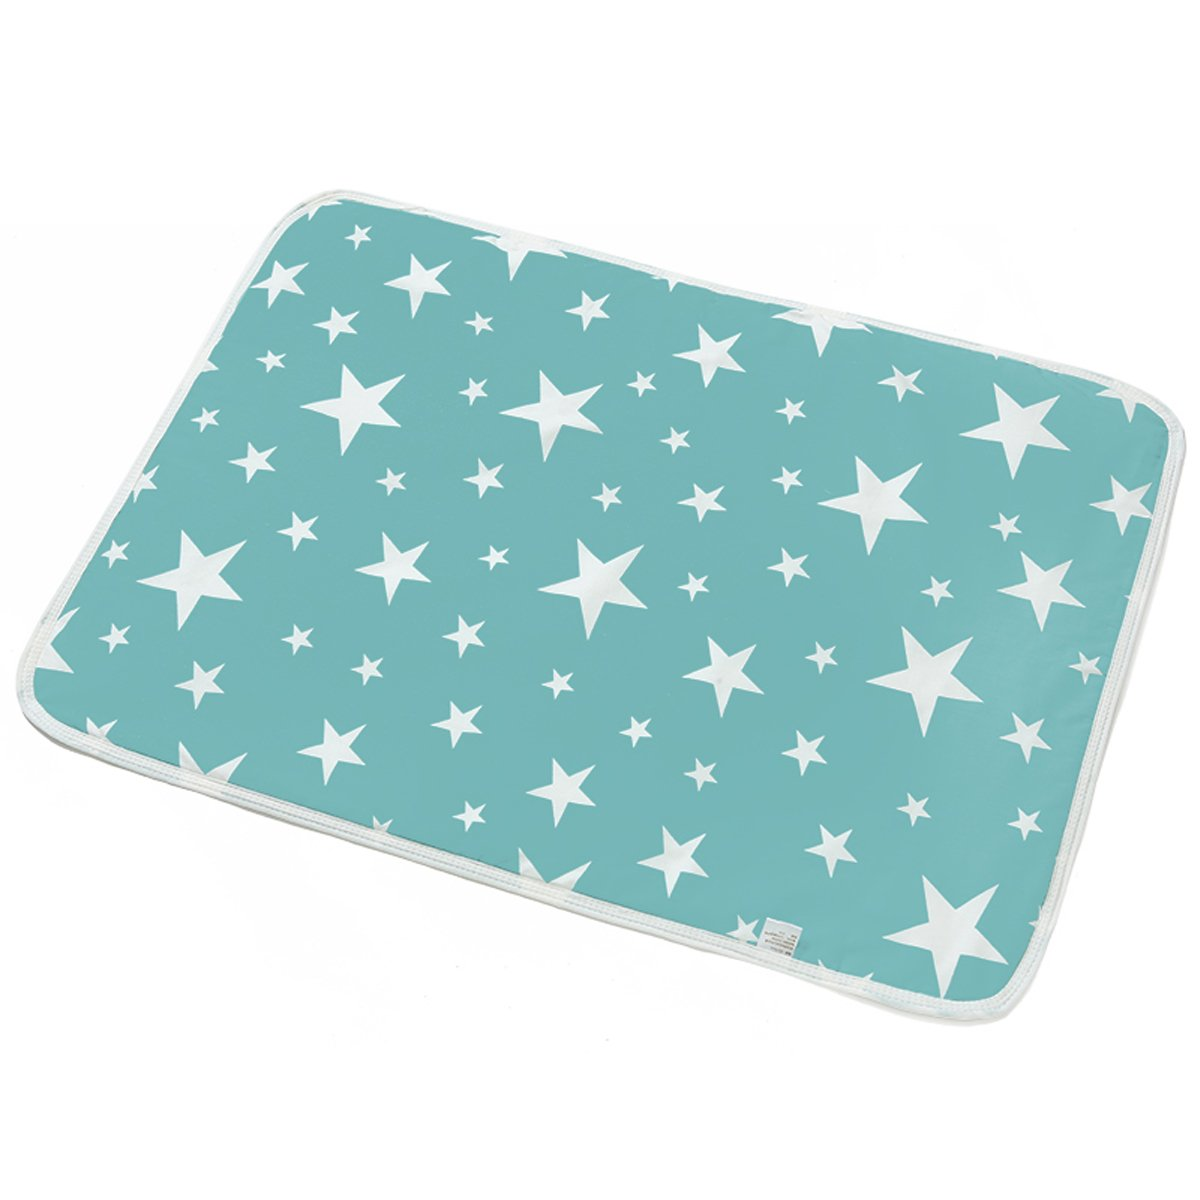 Changing Pad Large Size Waterproof Cotton Changing Mat with Wet Bag for Kids by LISICK (23.6''×29.5'')